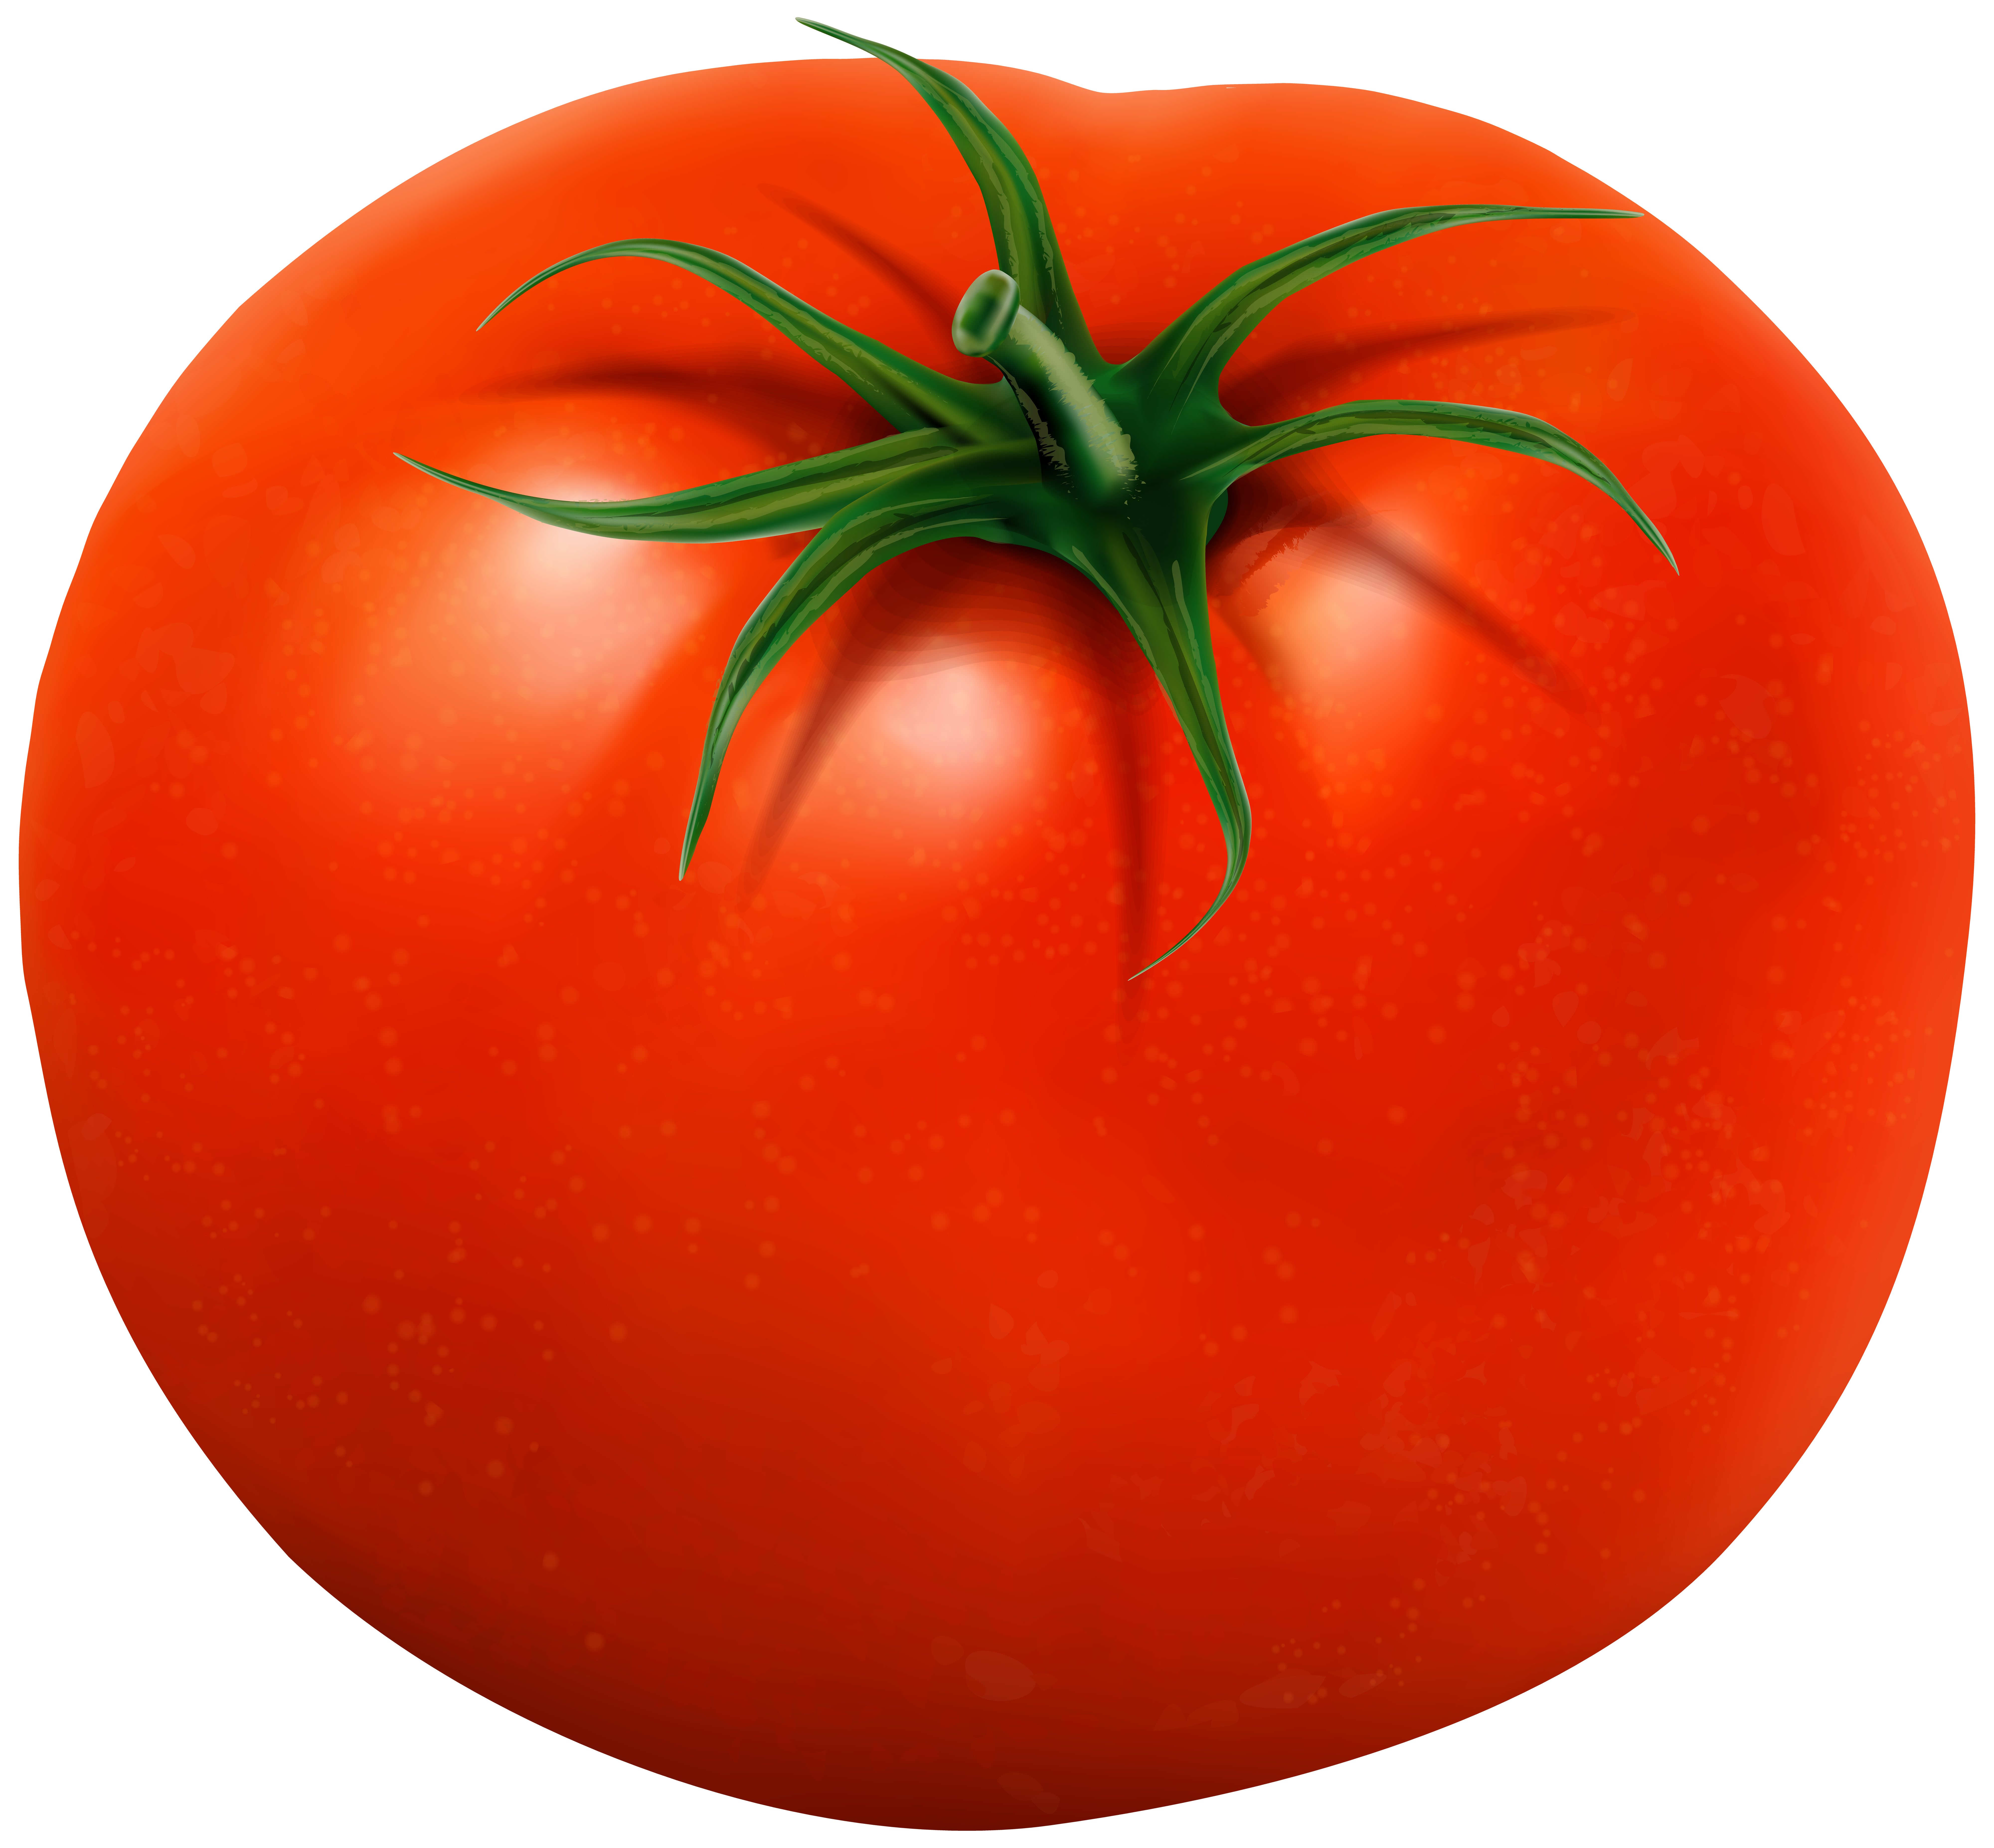 Tomato transparent clip art. Tomatoes clipart two